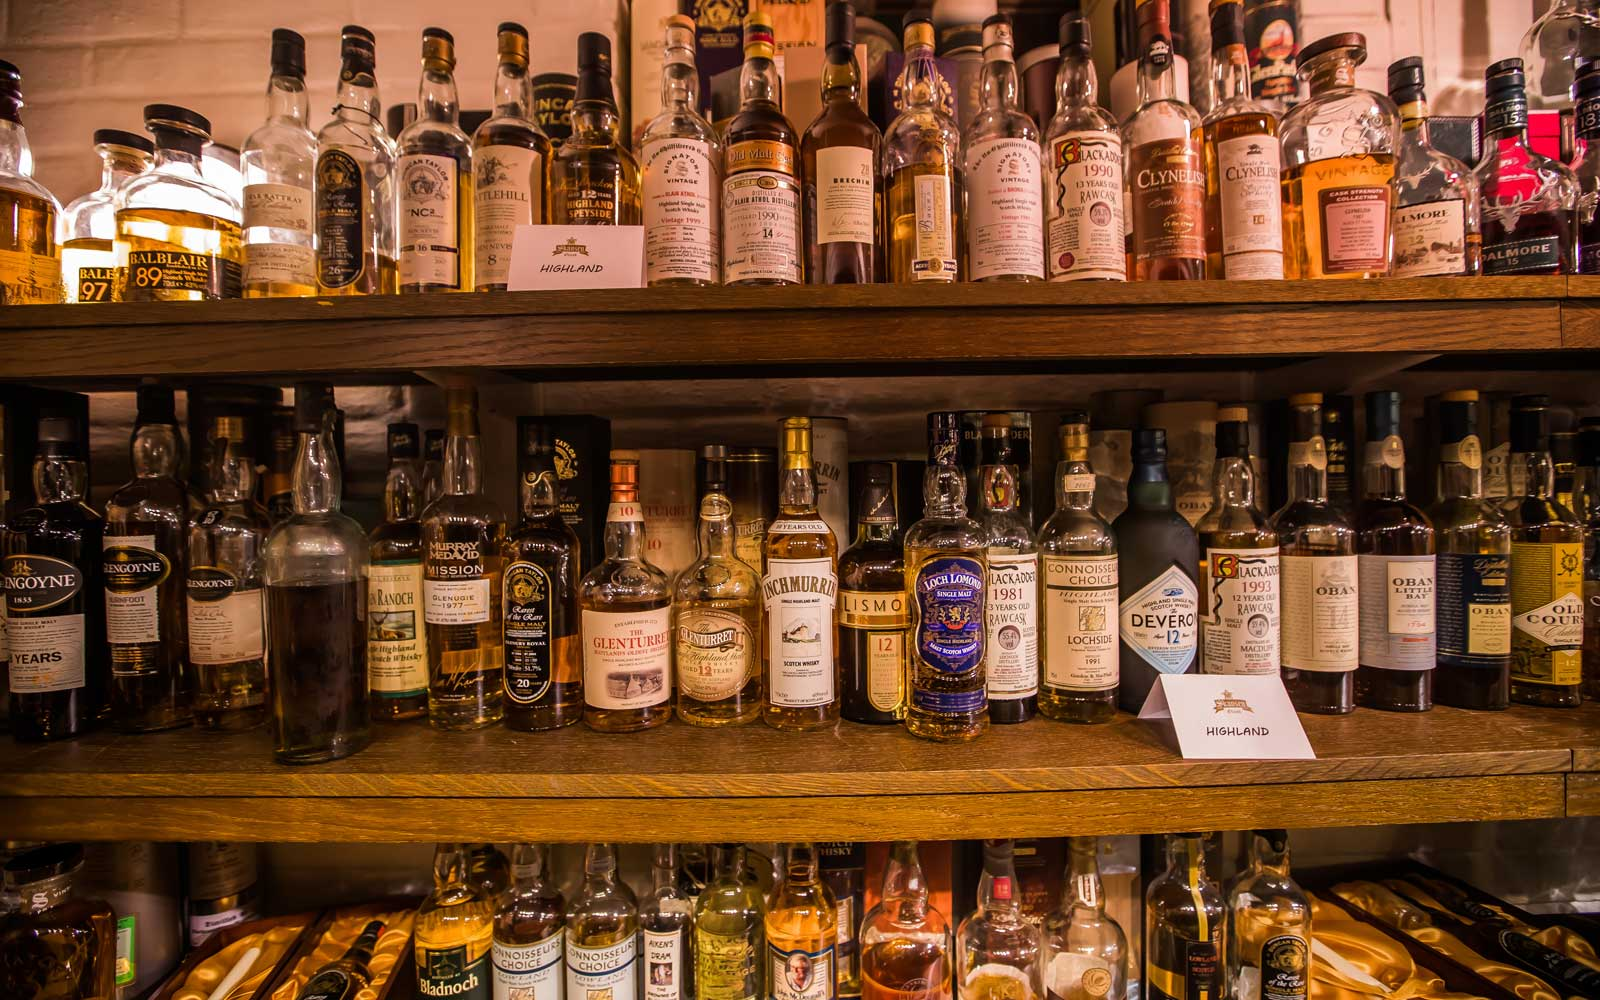 Hotel Skanksen is now home to more than 1,000 whisky varieties.